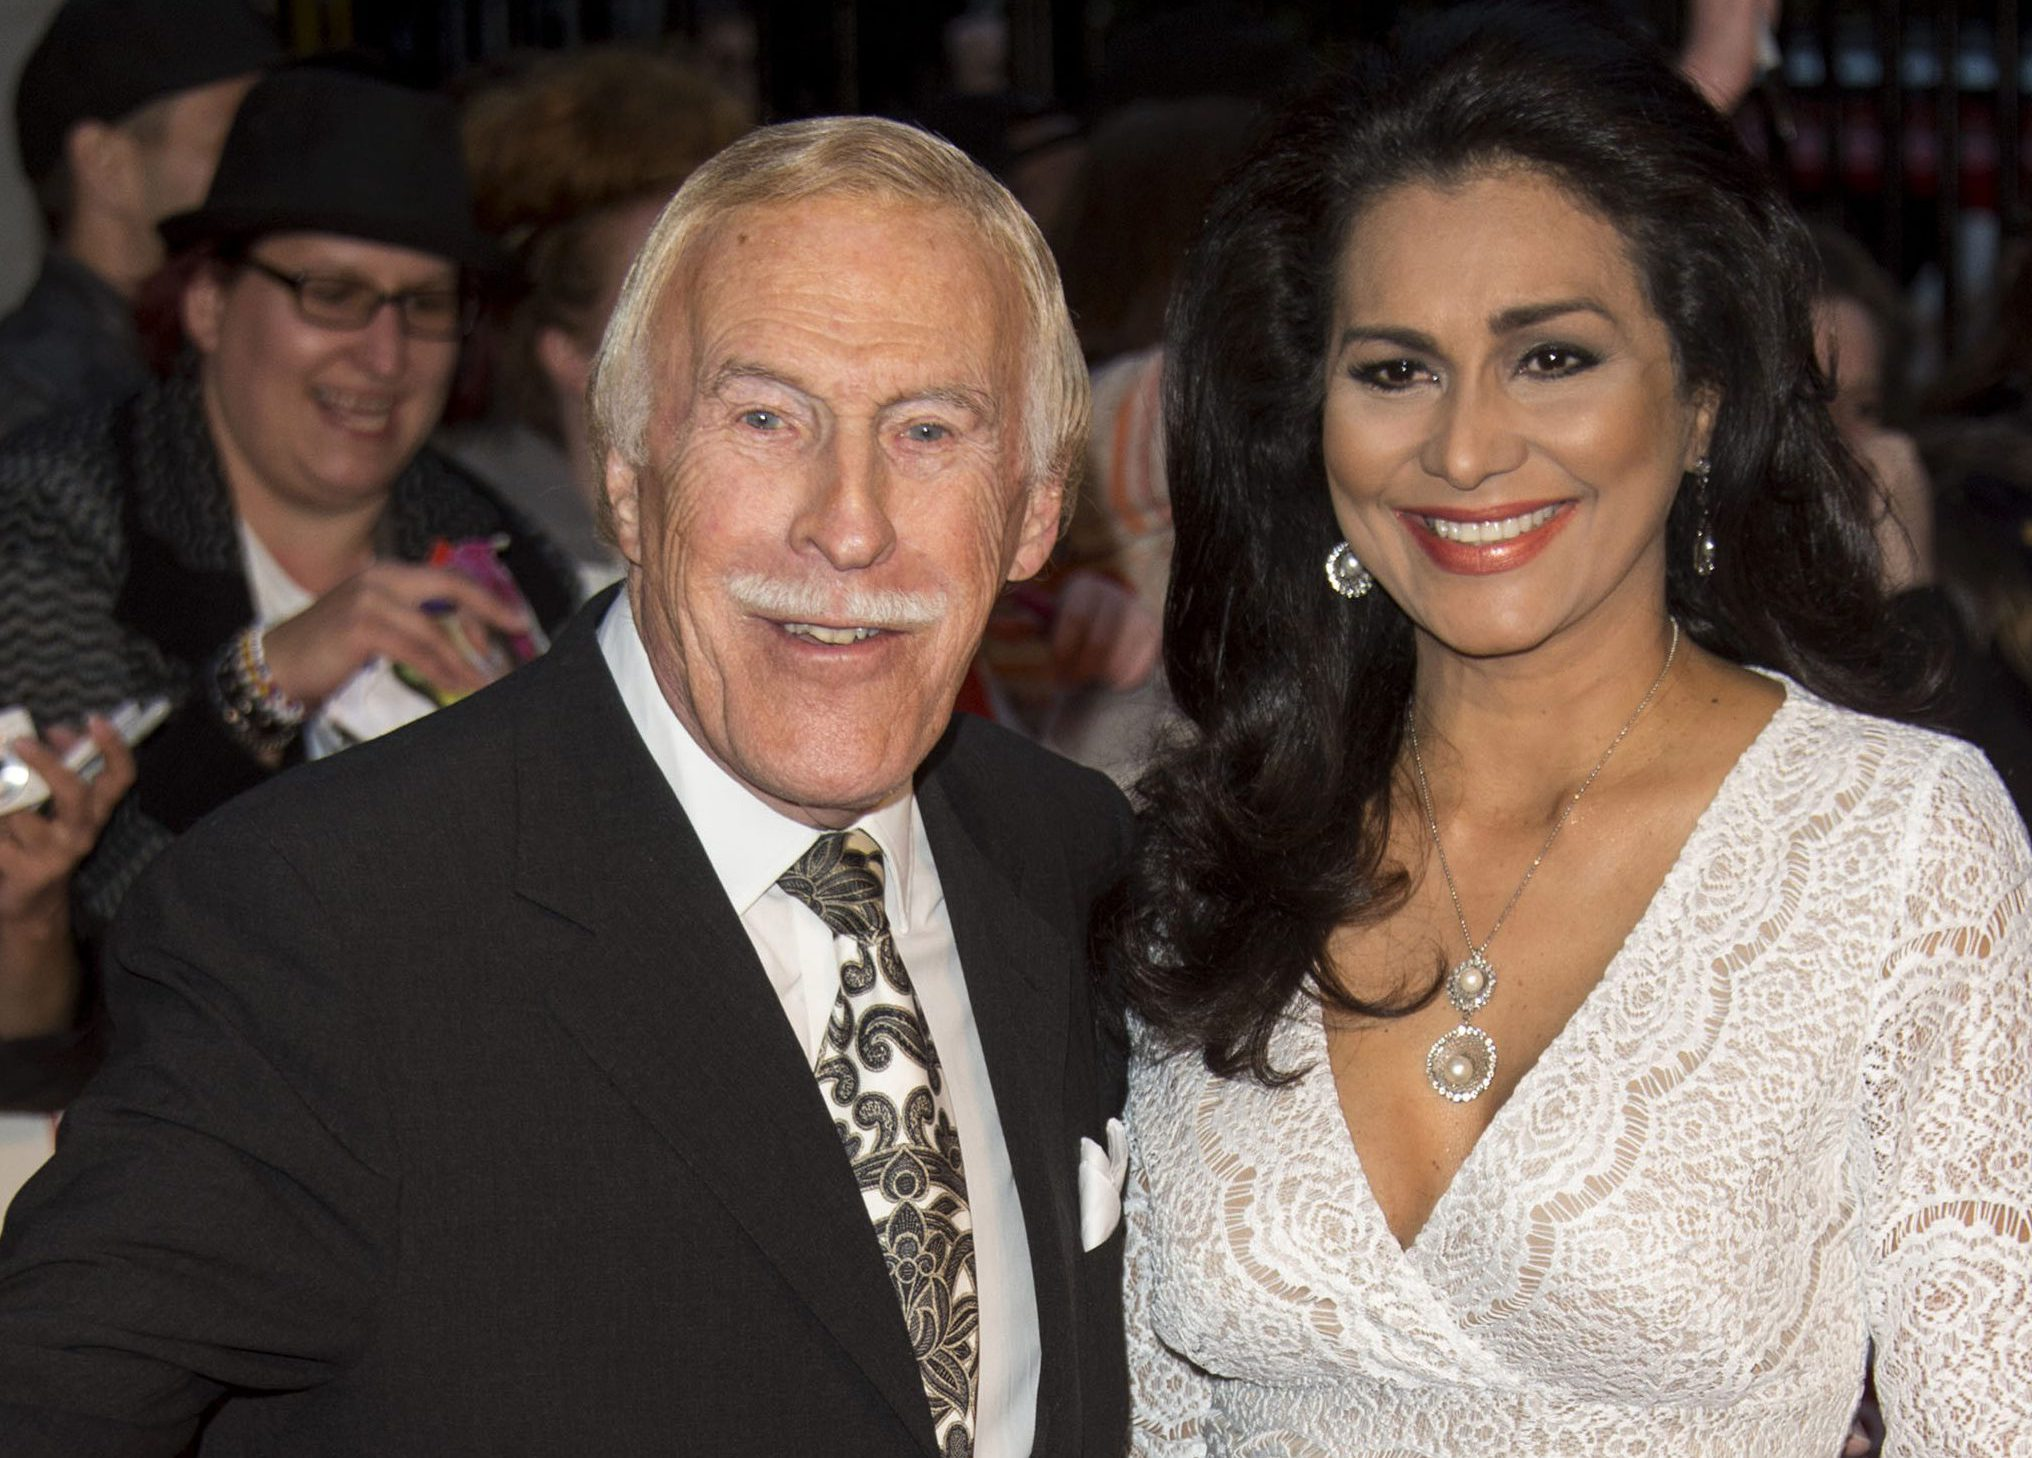 Who is Wilnelia Merced? Bruce Forsyth's widow, former Miss World and Puerto Rican actress